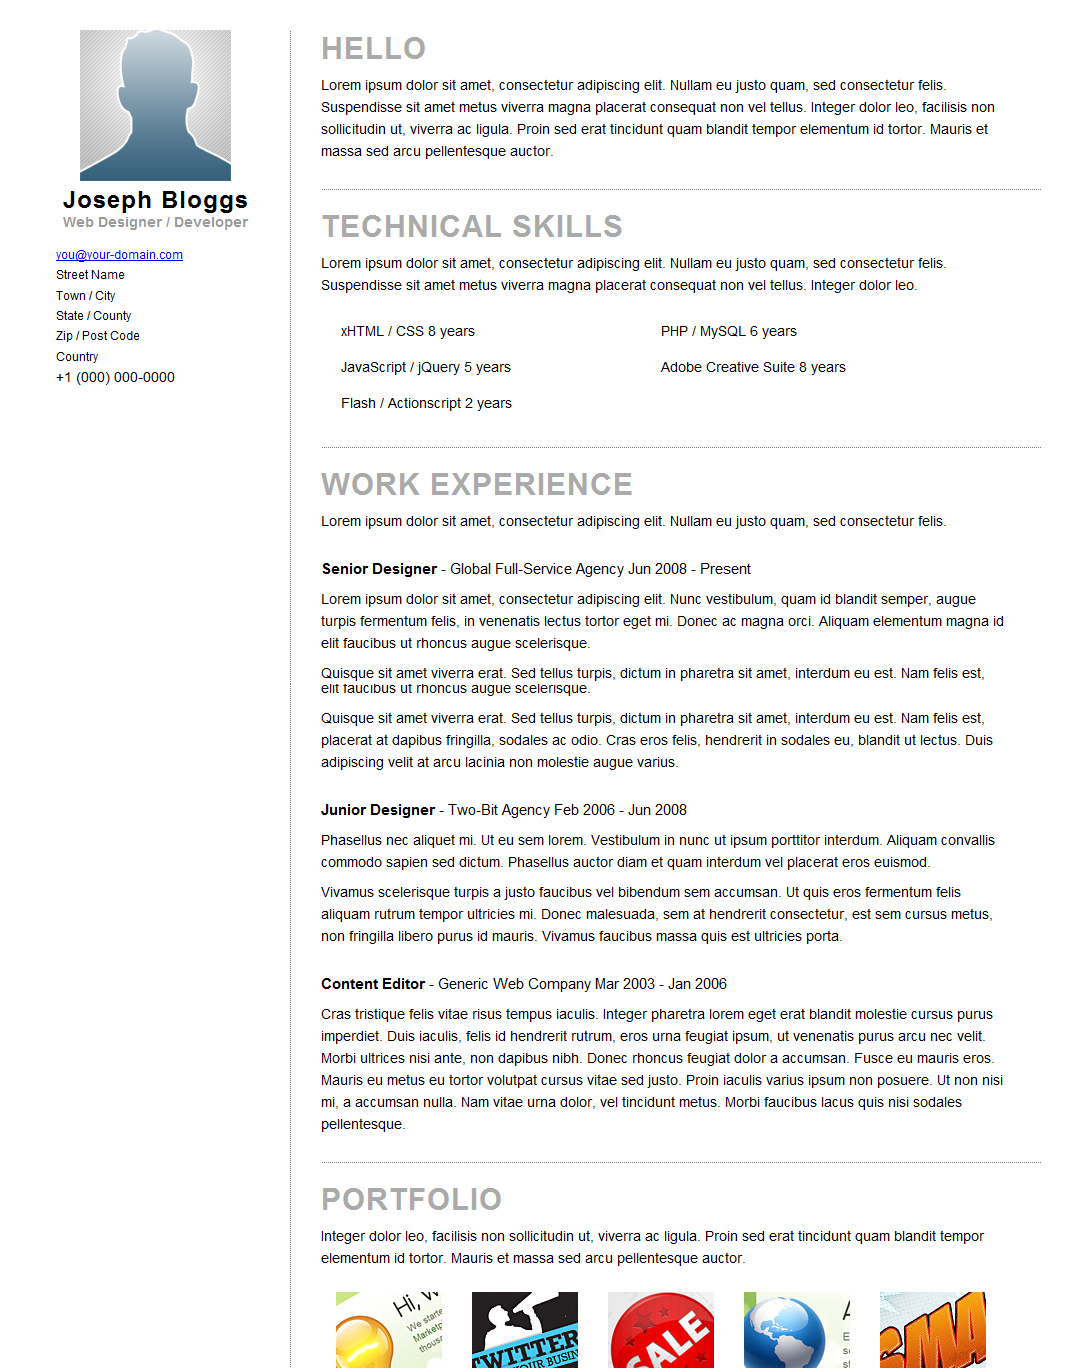 Pinstripe - Premium Resume / CV Template - Comes with print stylesheet, this is how your CV will look if they hit print.